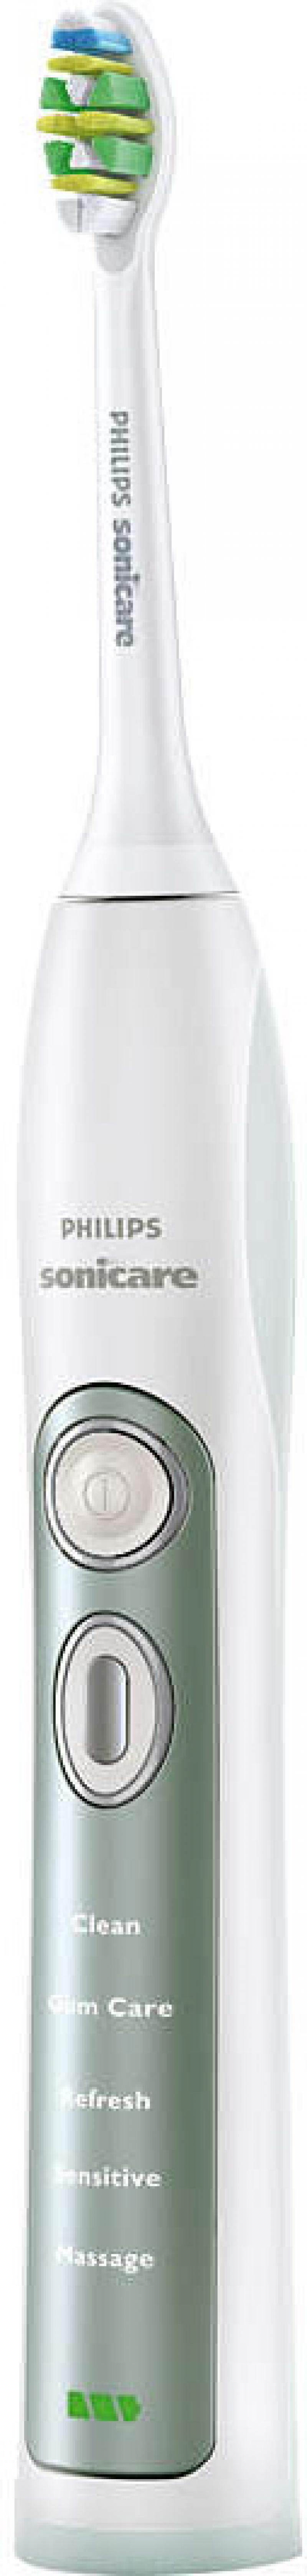 Зубная щётка Philips HX6921/06 Sonicare FlexCare+ белый 50pcs new uv germicidal sanitizer replacement bulb for philips sonicare hx6150 hx6160 hx7990 hx6972 hx6011 hx6711 hx6932 hx6921